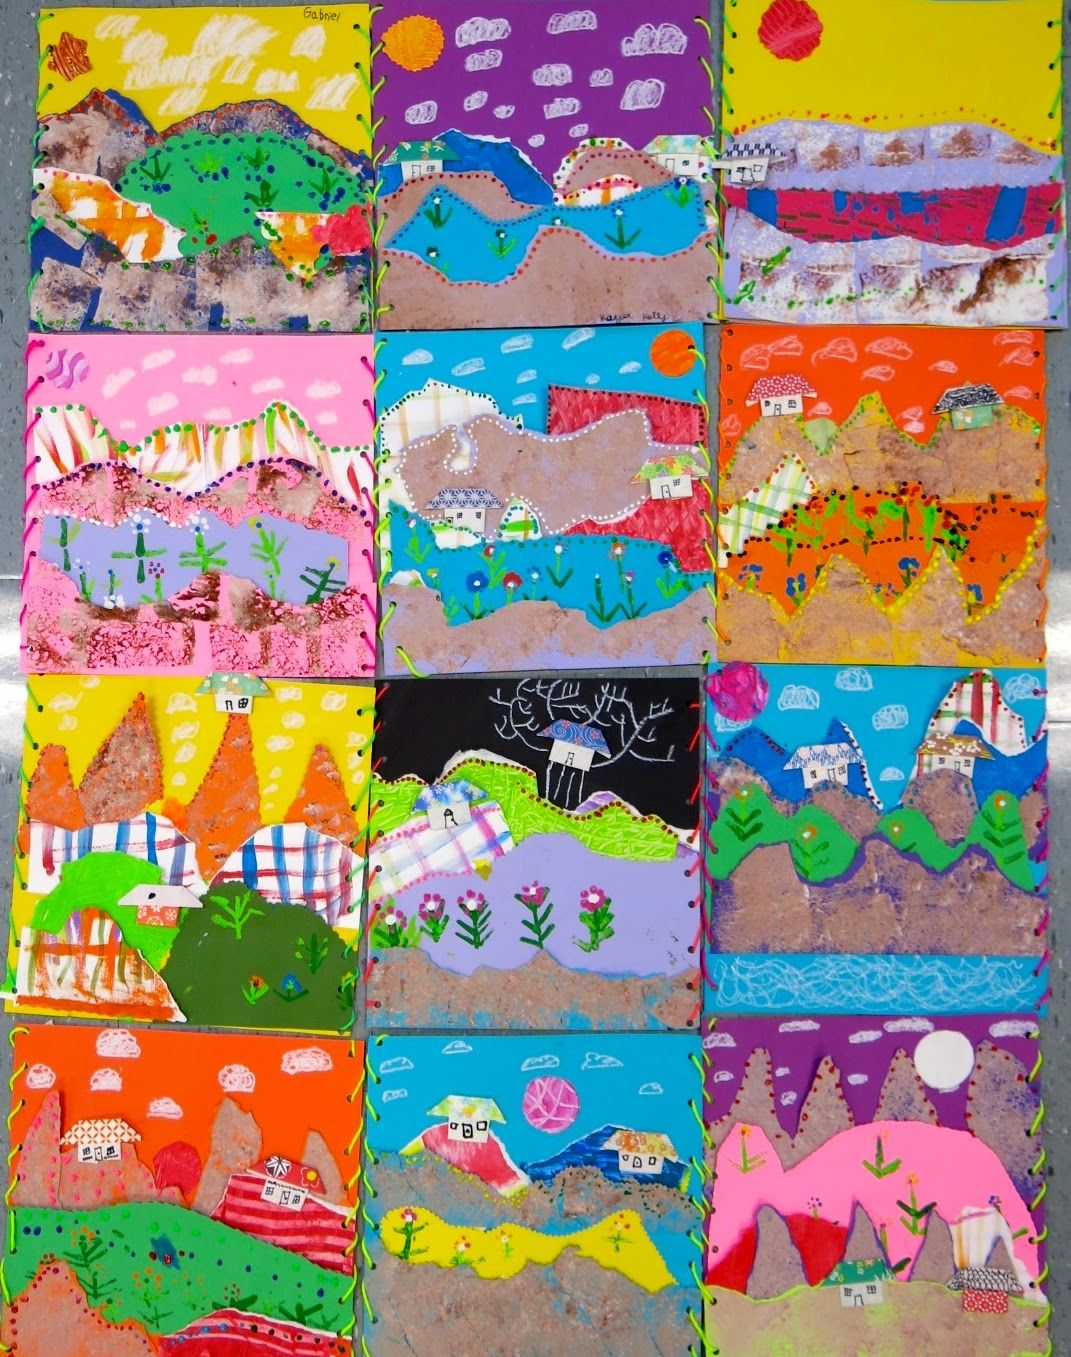 In The Art Room Second Grade Collage Landscapes Inspired By Chilean Arpilleras Cassie Stephens